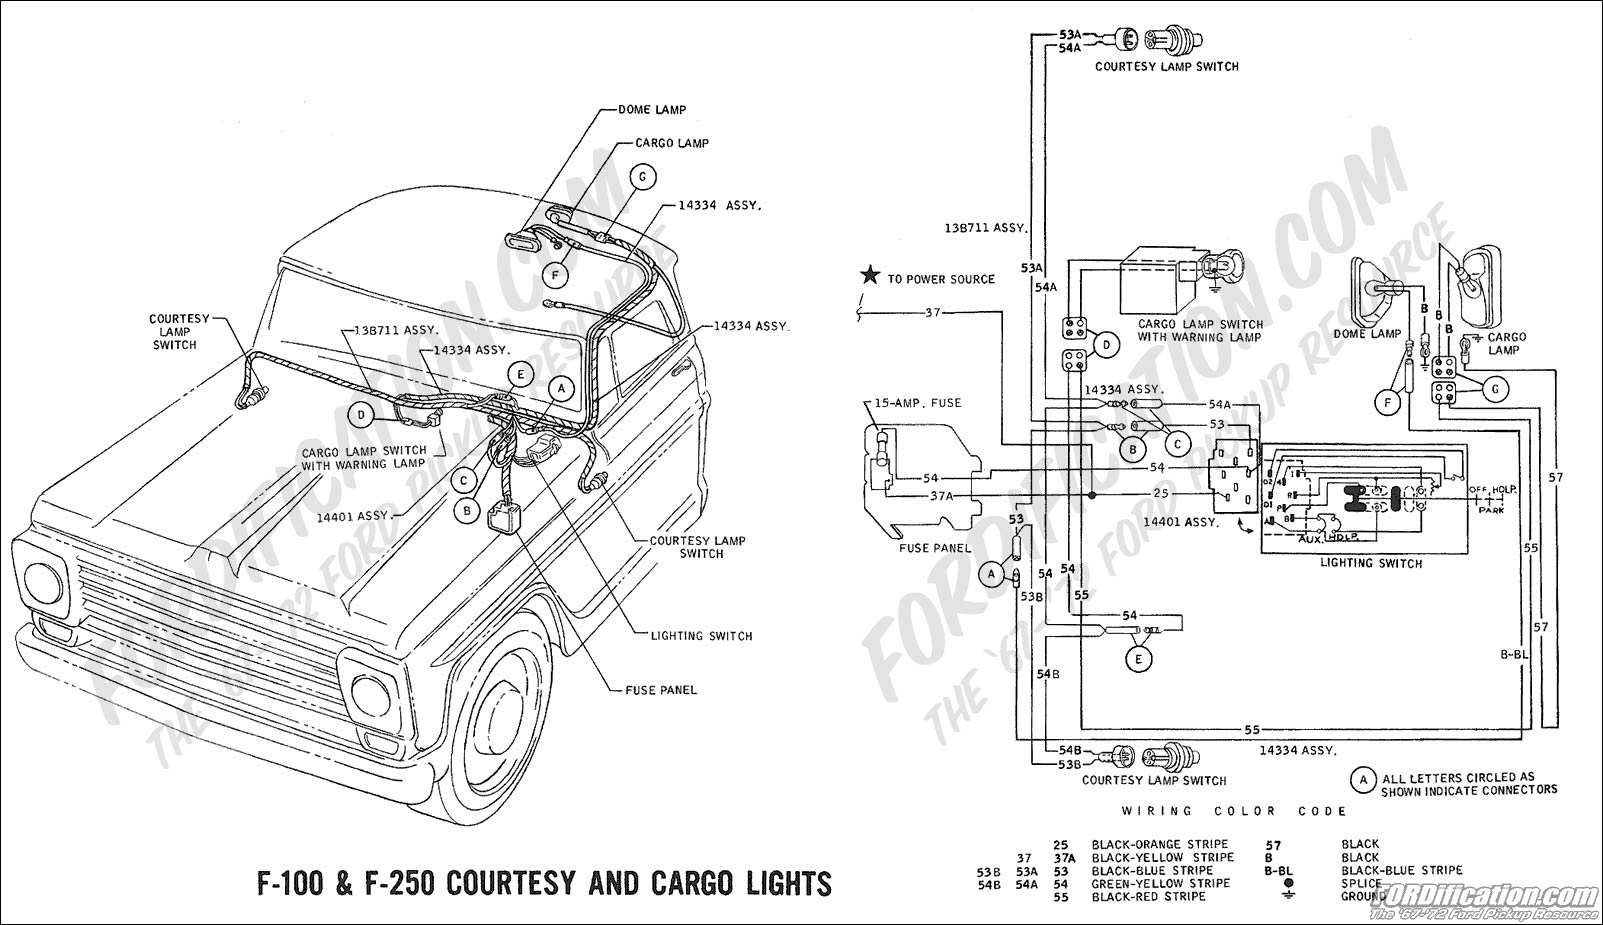 1960 ford f100 wiring diagram 1960 image wiring 1960 ford f100 wiring diagram 1960 image wiring diagram